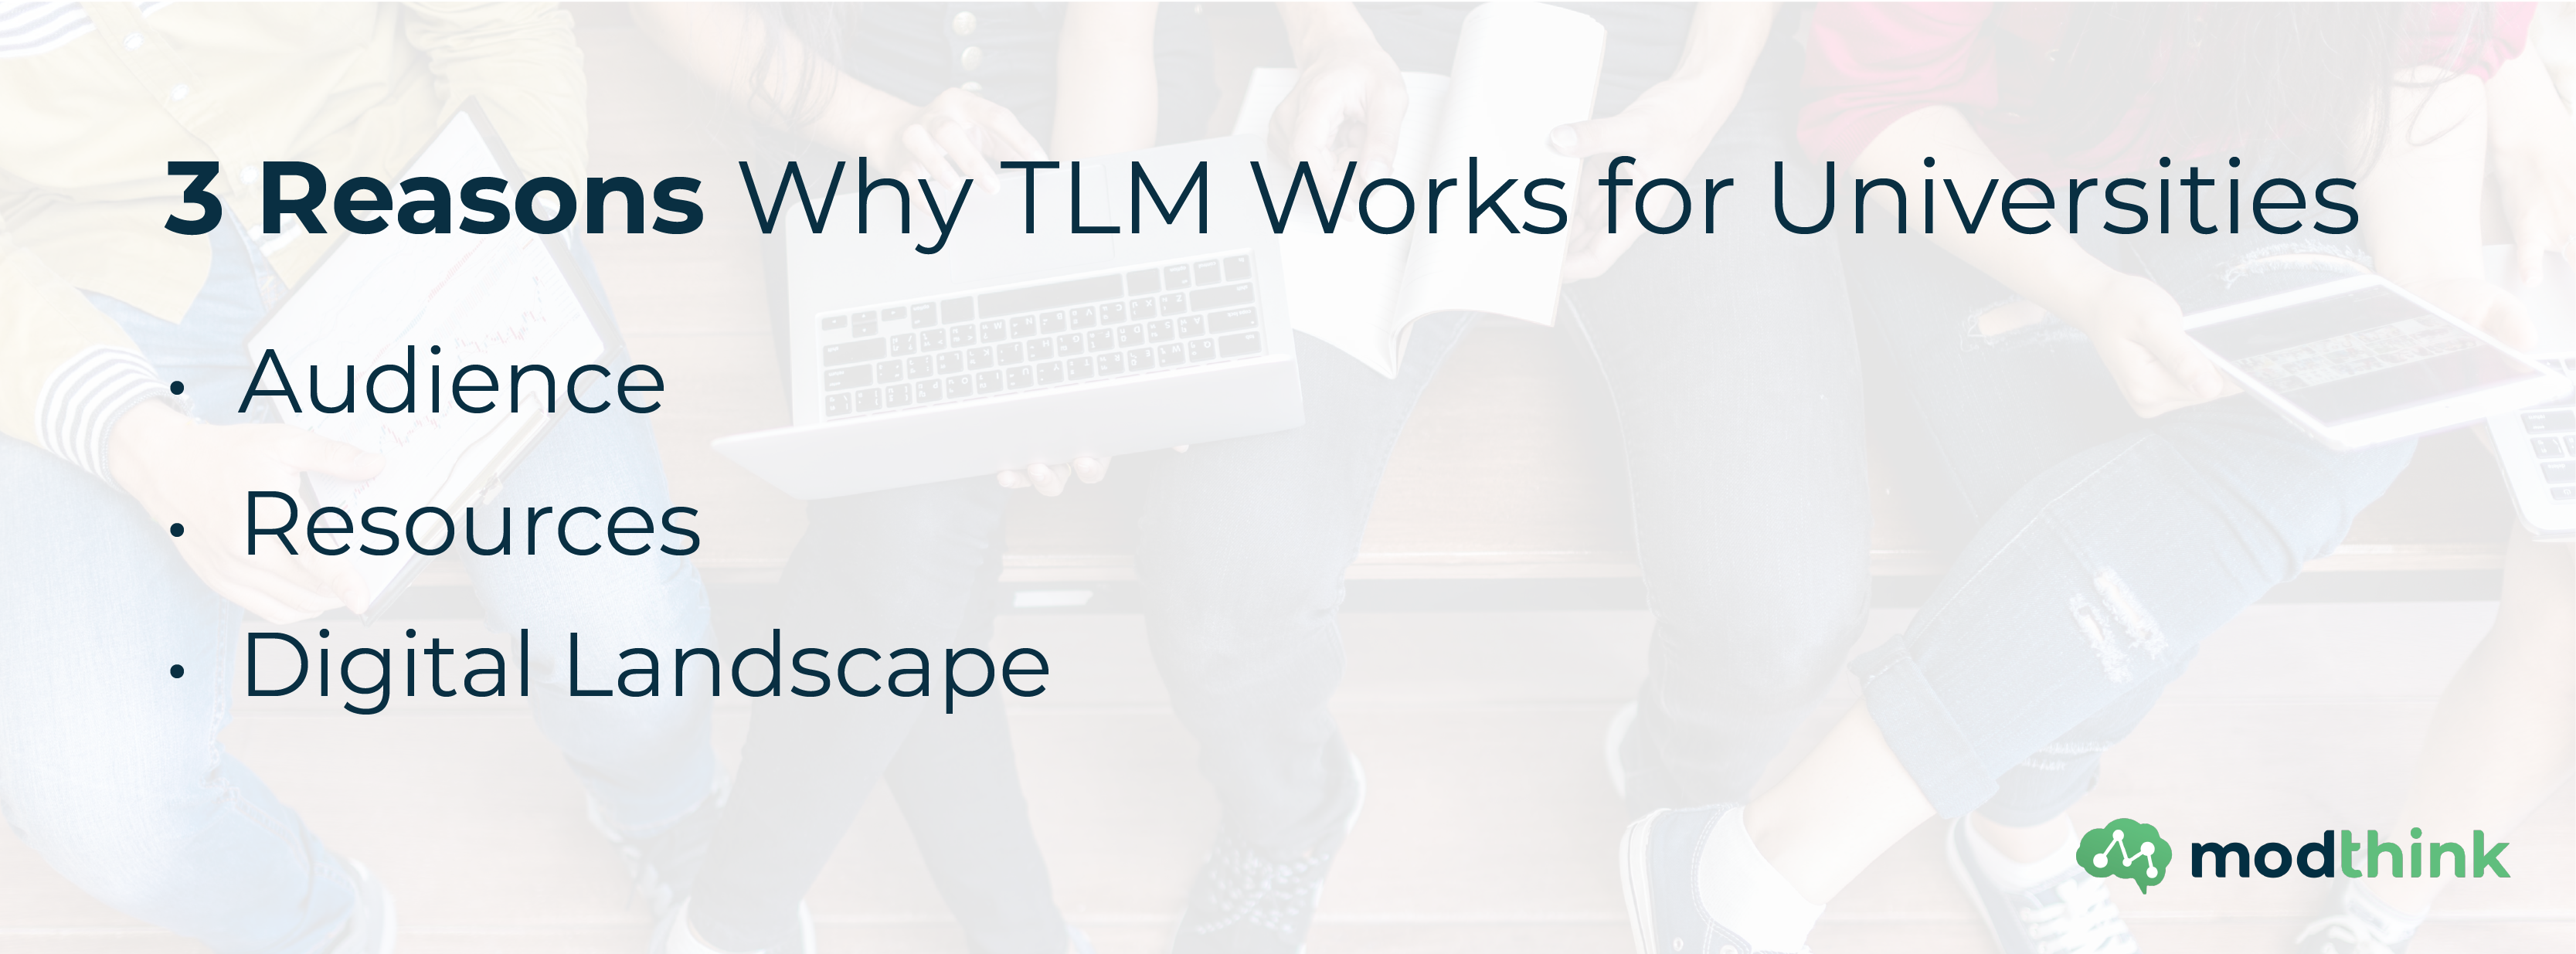 3 Reasons Why TLM Works for Universities - Audience, Resources, Digital Landscape